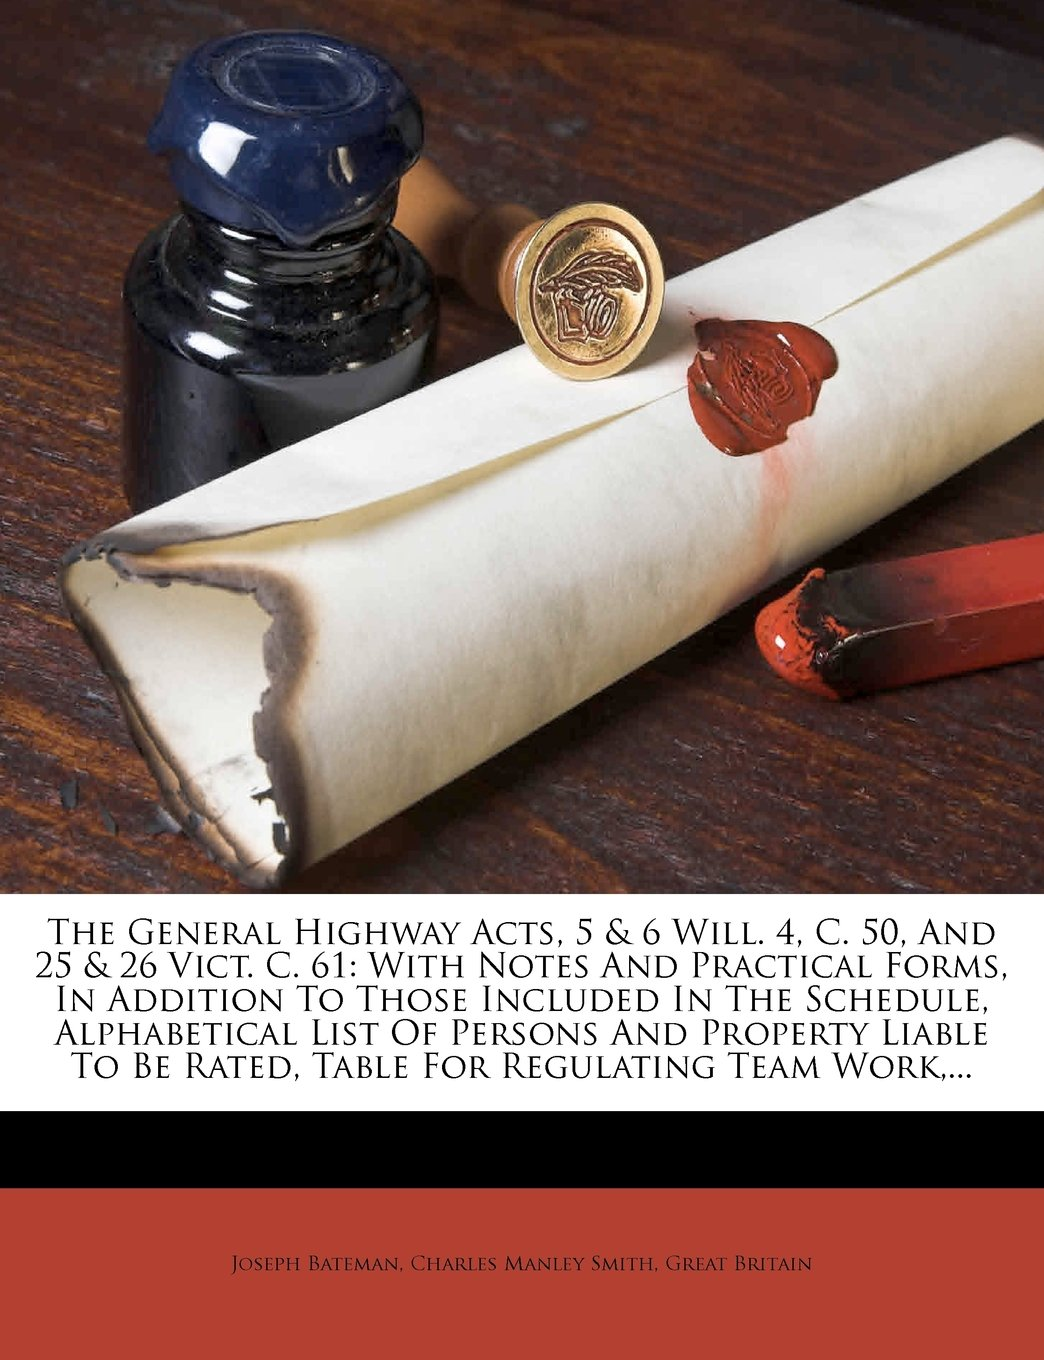 Read Online The General Highway Acts, 5 & 6 Will. 4, C. 50, And 25 & 26 Vict. C. 61: With Notes And Practical Forms, In Addition To Those Included In The ... Be Rated, Table For Regulating Team Work,... PDF